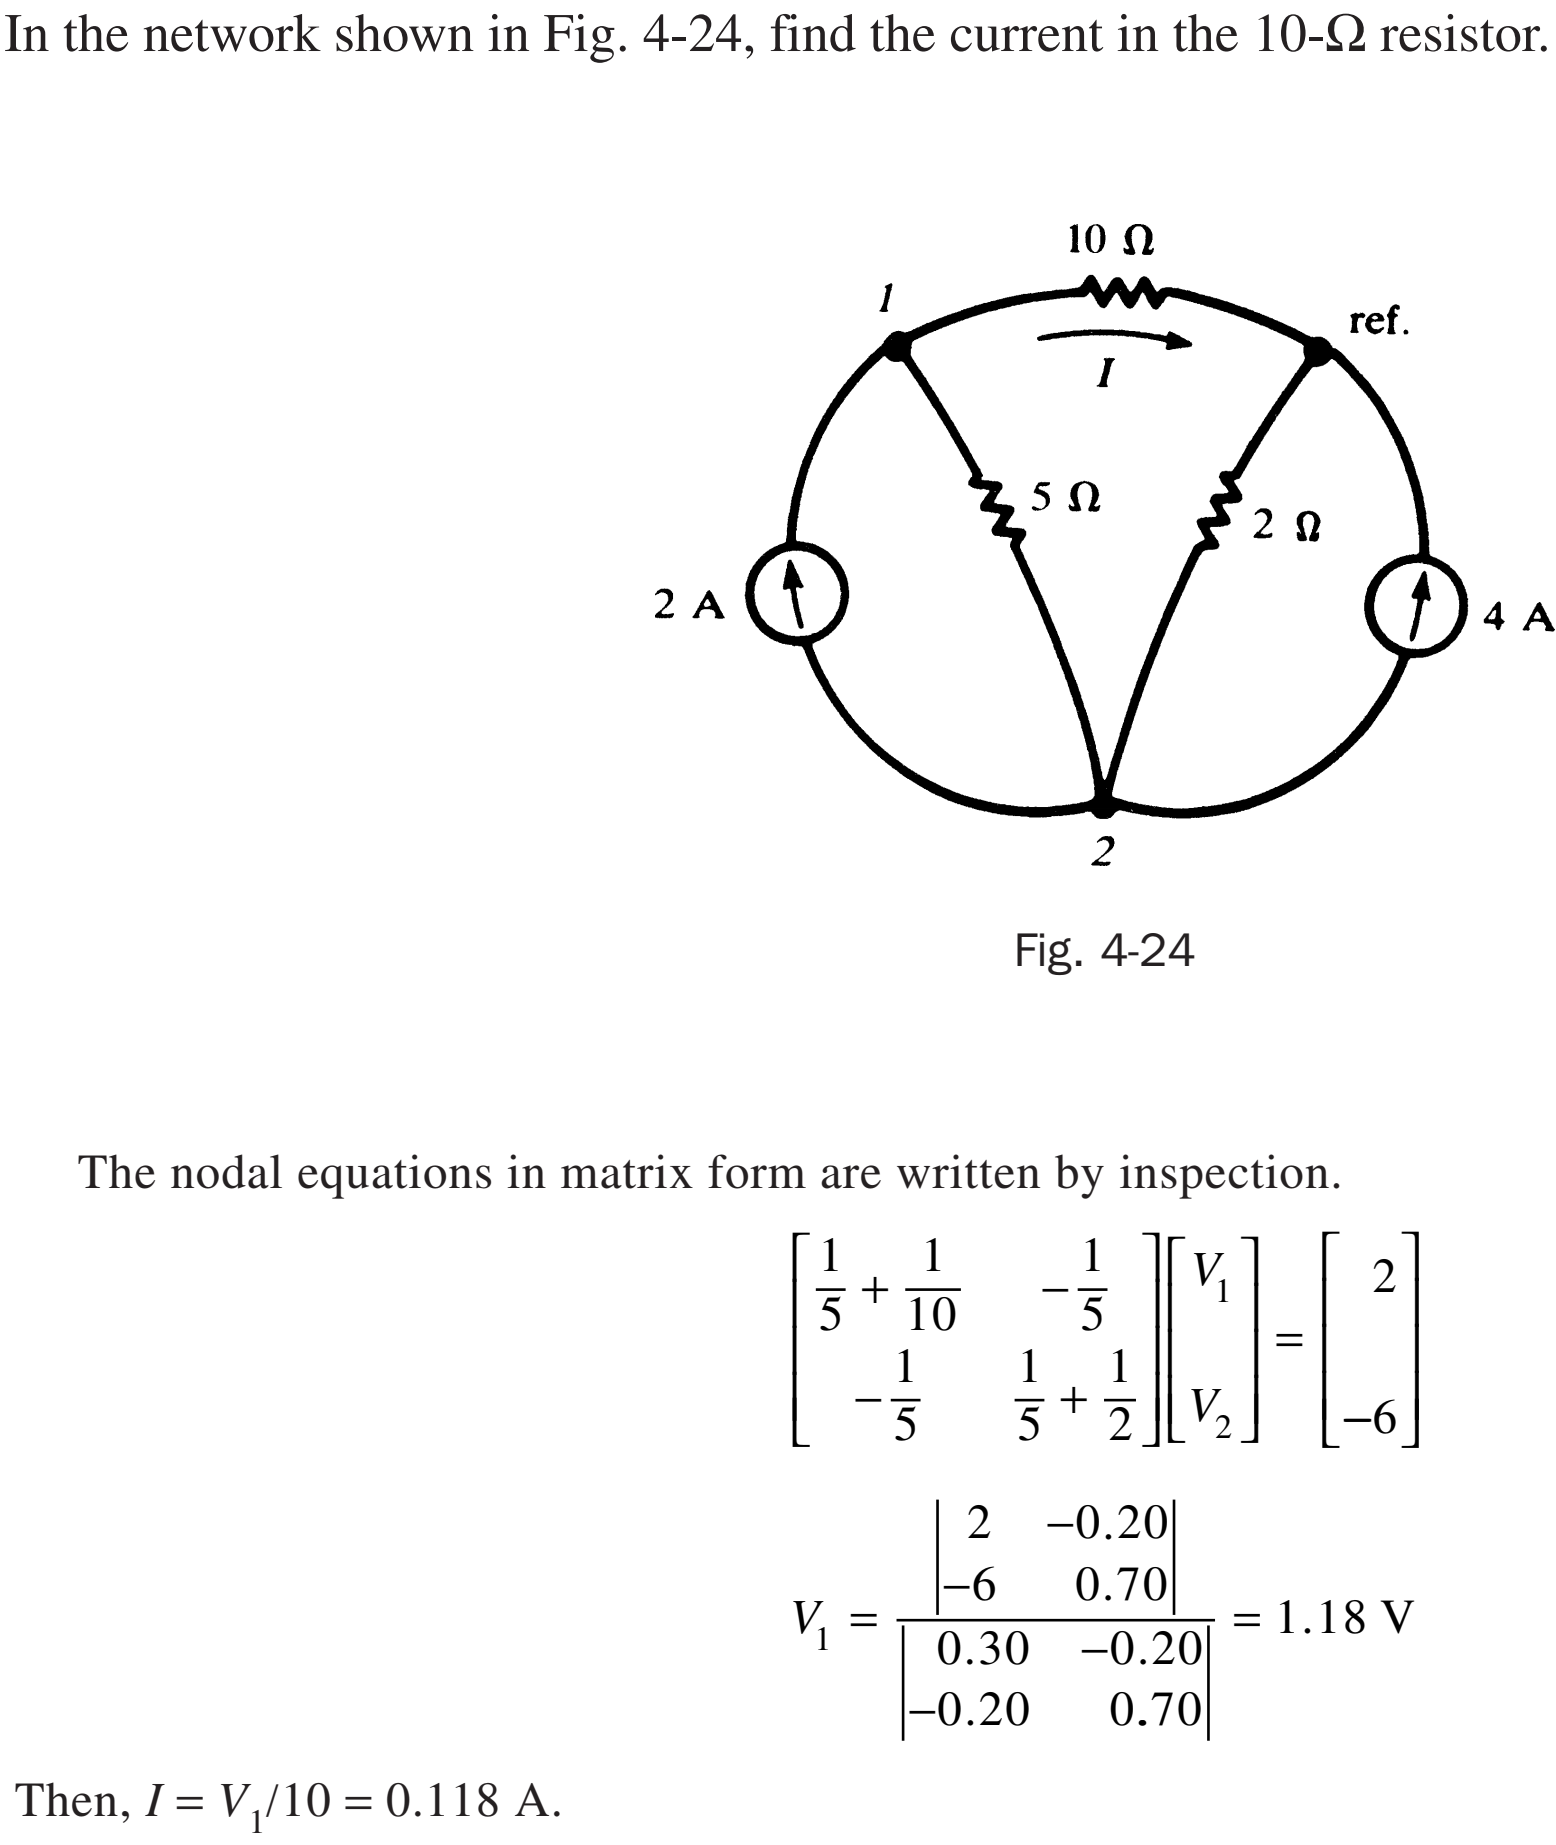 In the network shown in Fig. 4-24, find the current in the 10-2 resistor 10 1 ref 5 Ω 2 0 2 A 4 A 2 Fig. 4-24 The nodal equations in matrix form are written by inspection. 1 1 1 2 10 5 1 1 Va -6 5 -0.20 0.70 0.30 -0.20 2 -6 = 1.18 V -0.20 0.70 Then, I V,/10 0.118 A